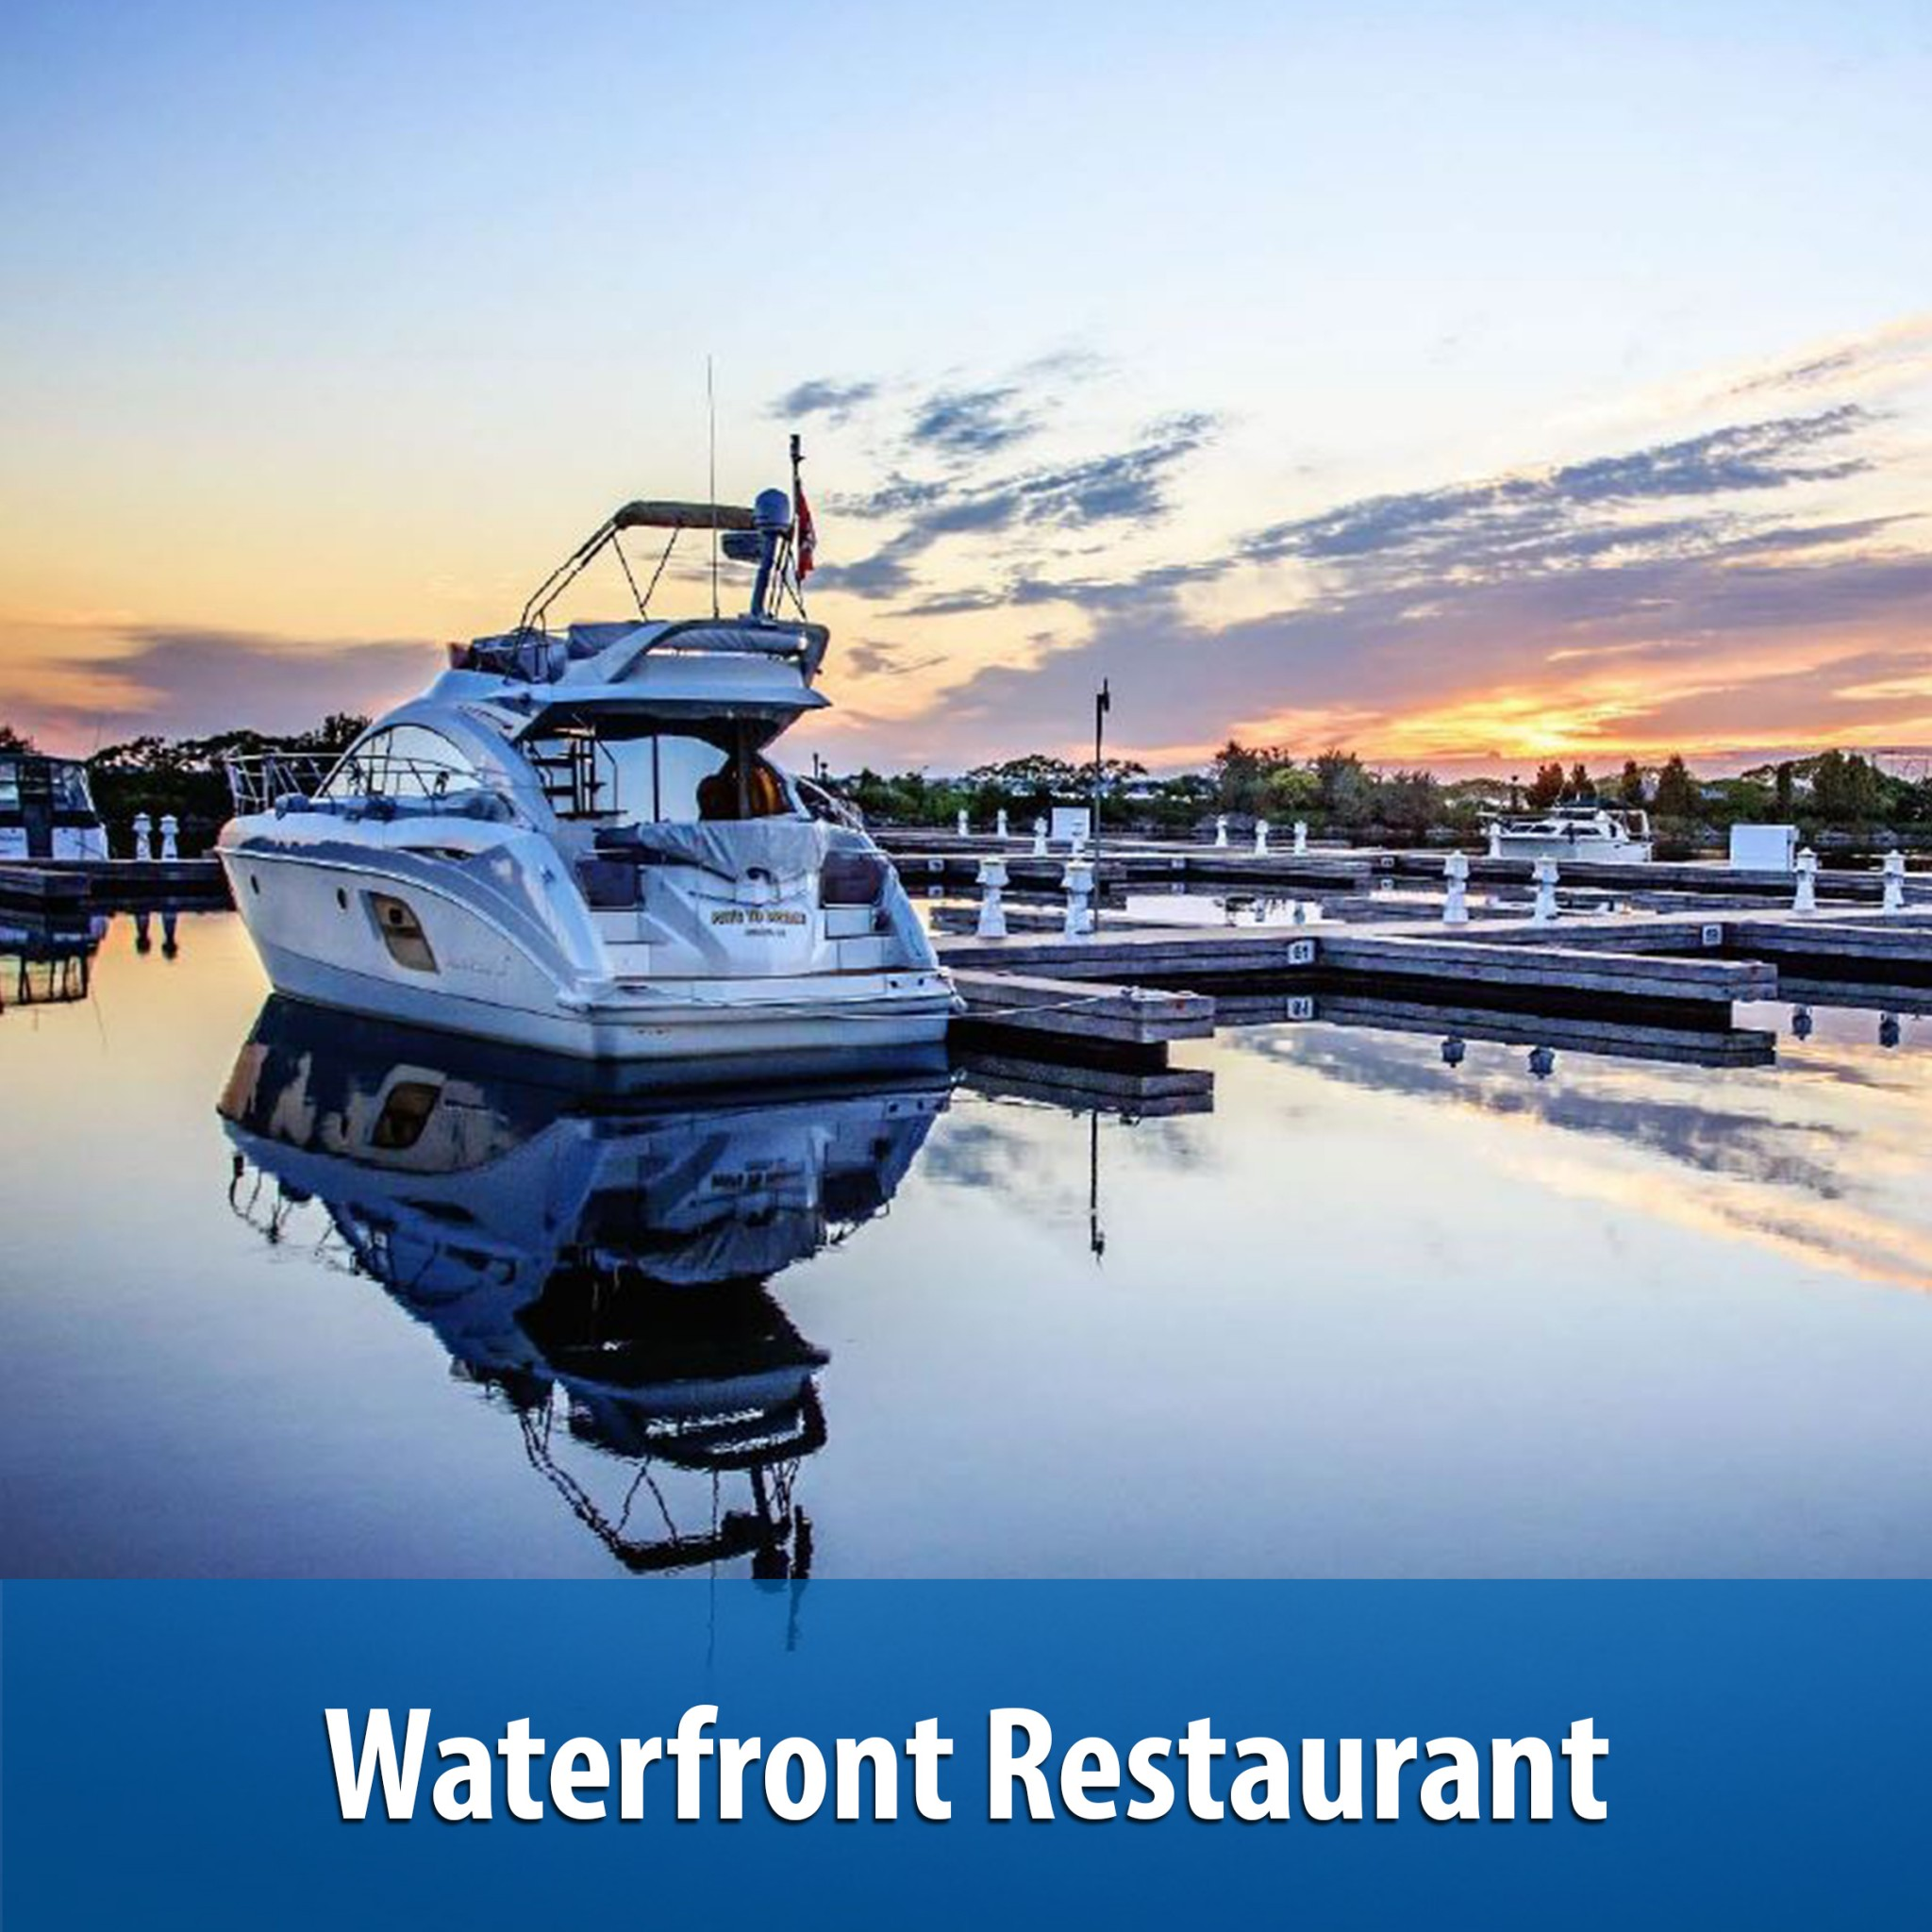 waterfront restaurant - Invest